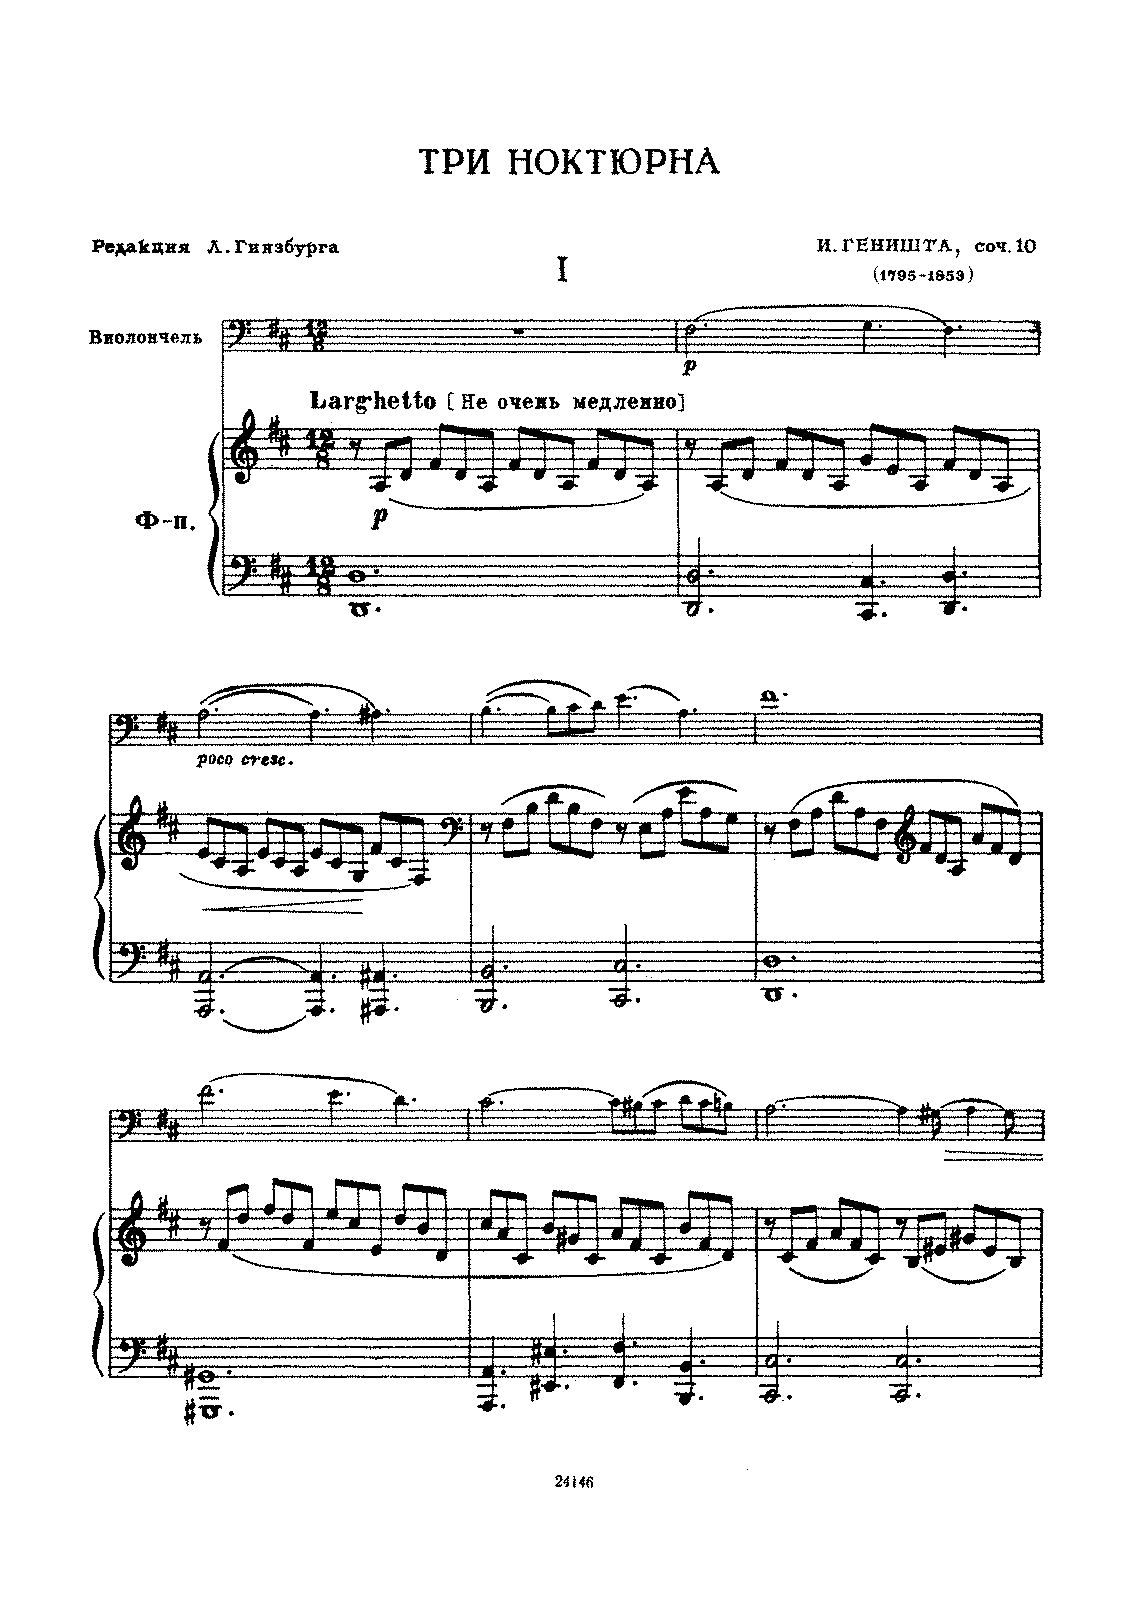 PMLP623392-Genischta - 10 3 Nocturnes for Cello and Piano Op.10 Score.pdf